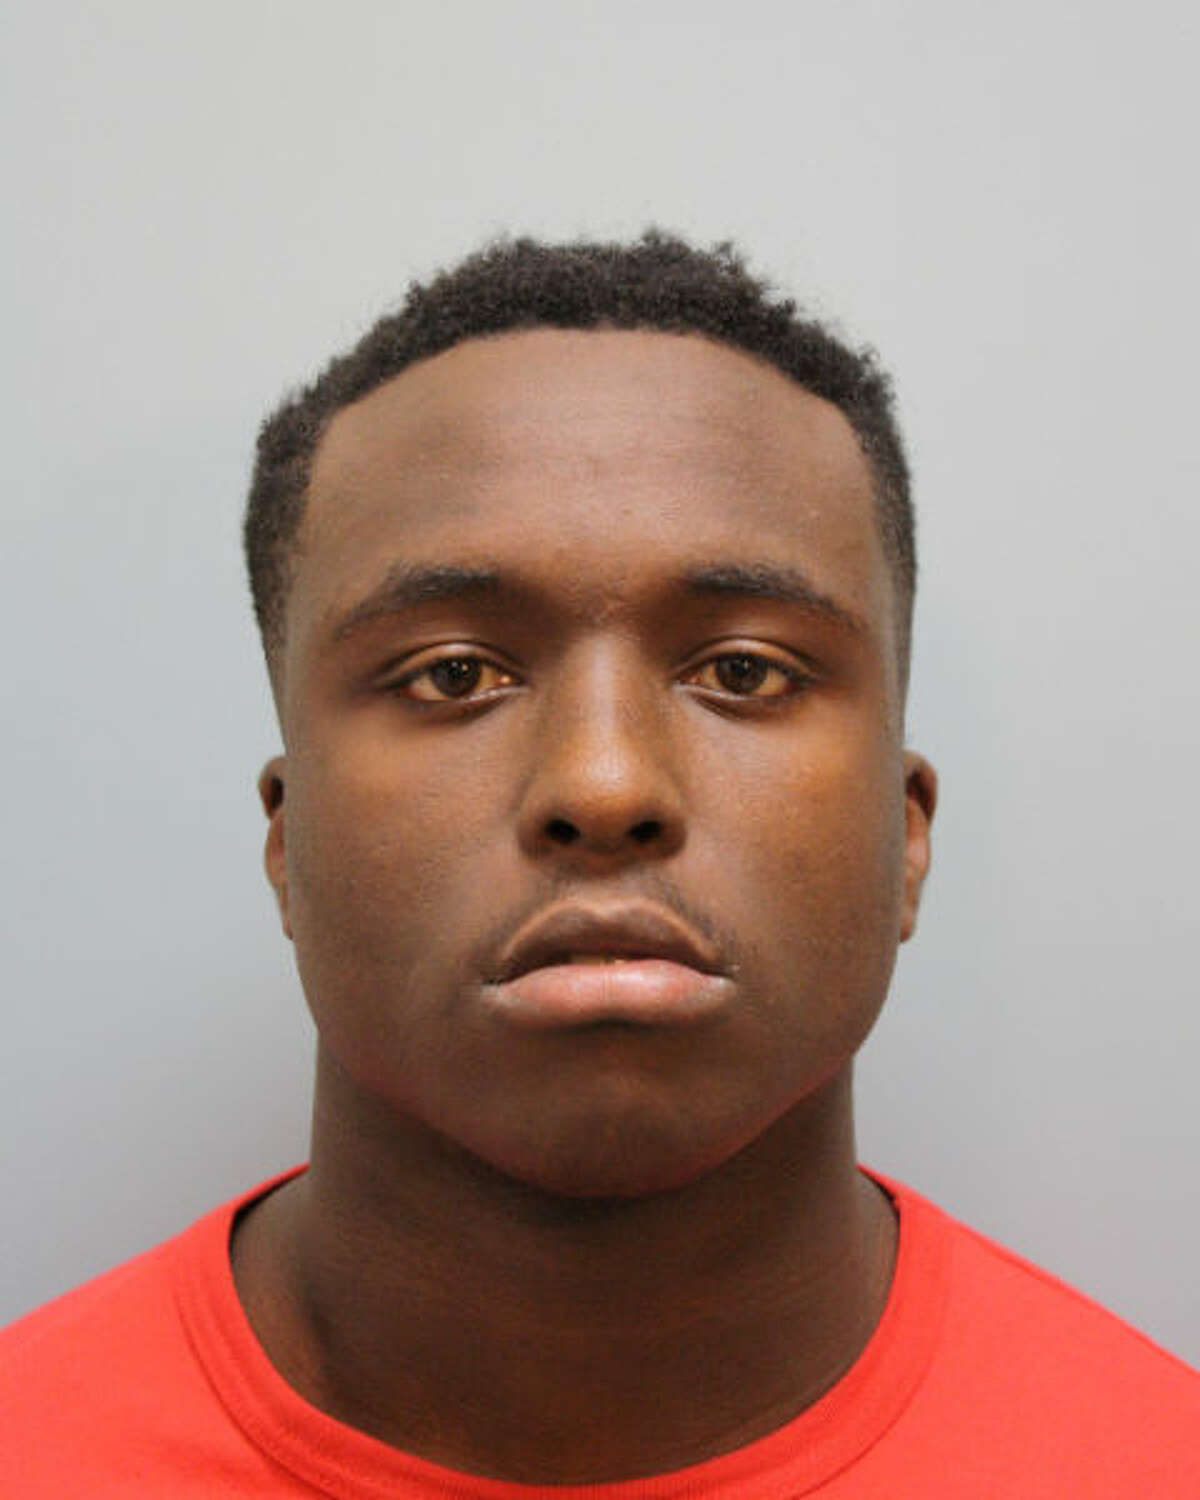 Bobby Joe Turner, 18, arrested and charged for the capital murder of a local Cypress man.